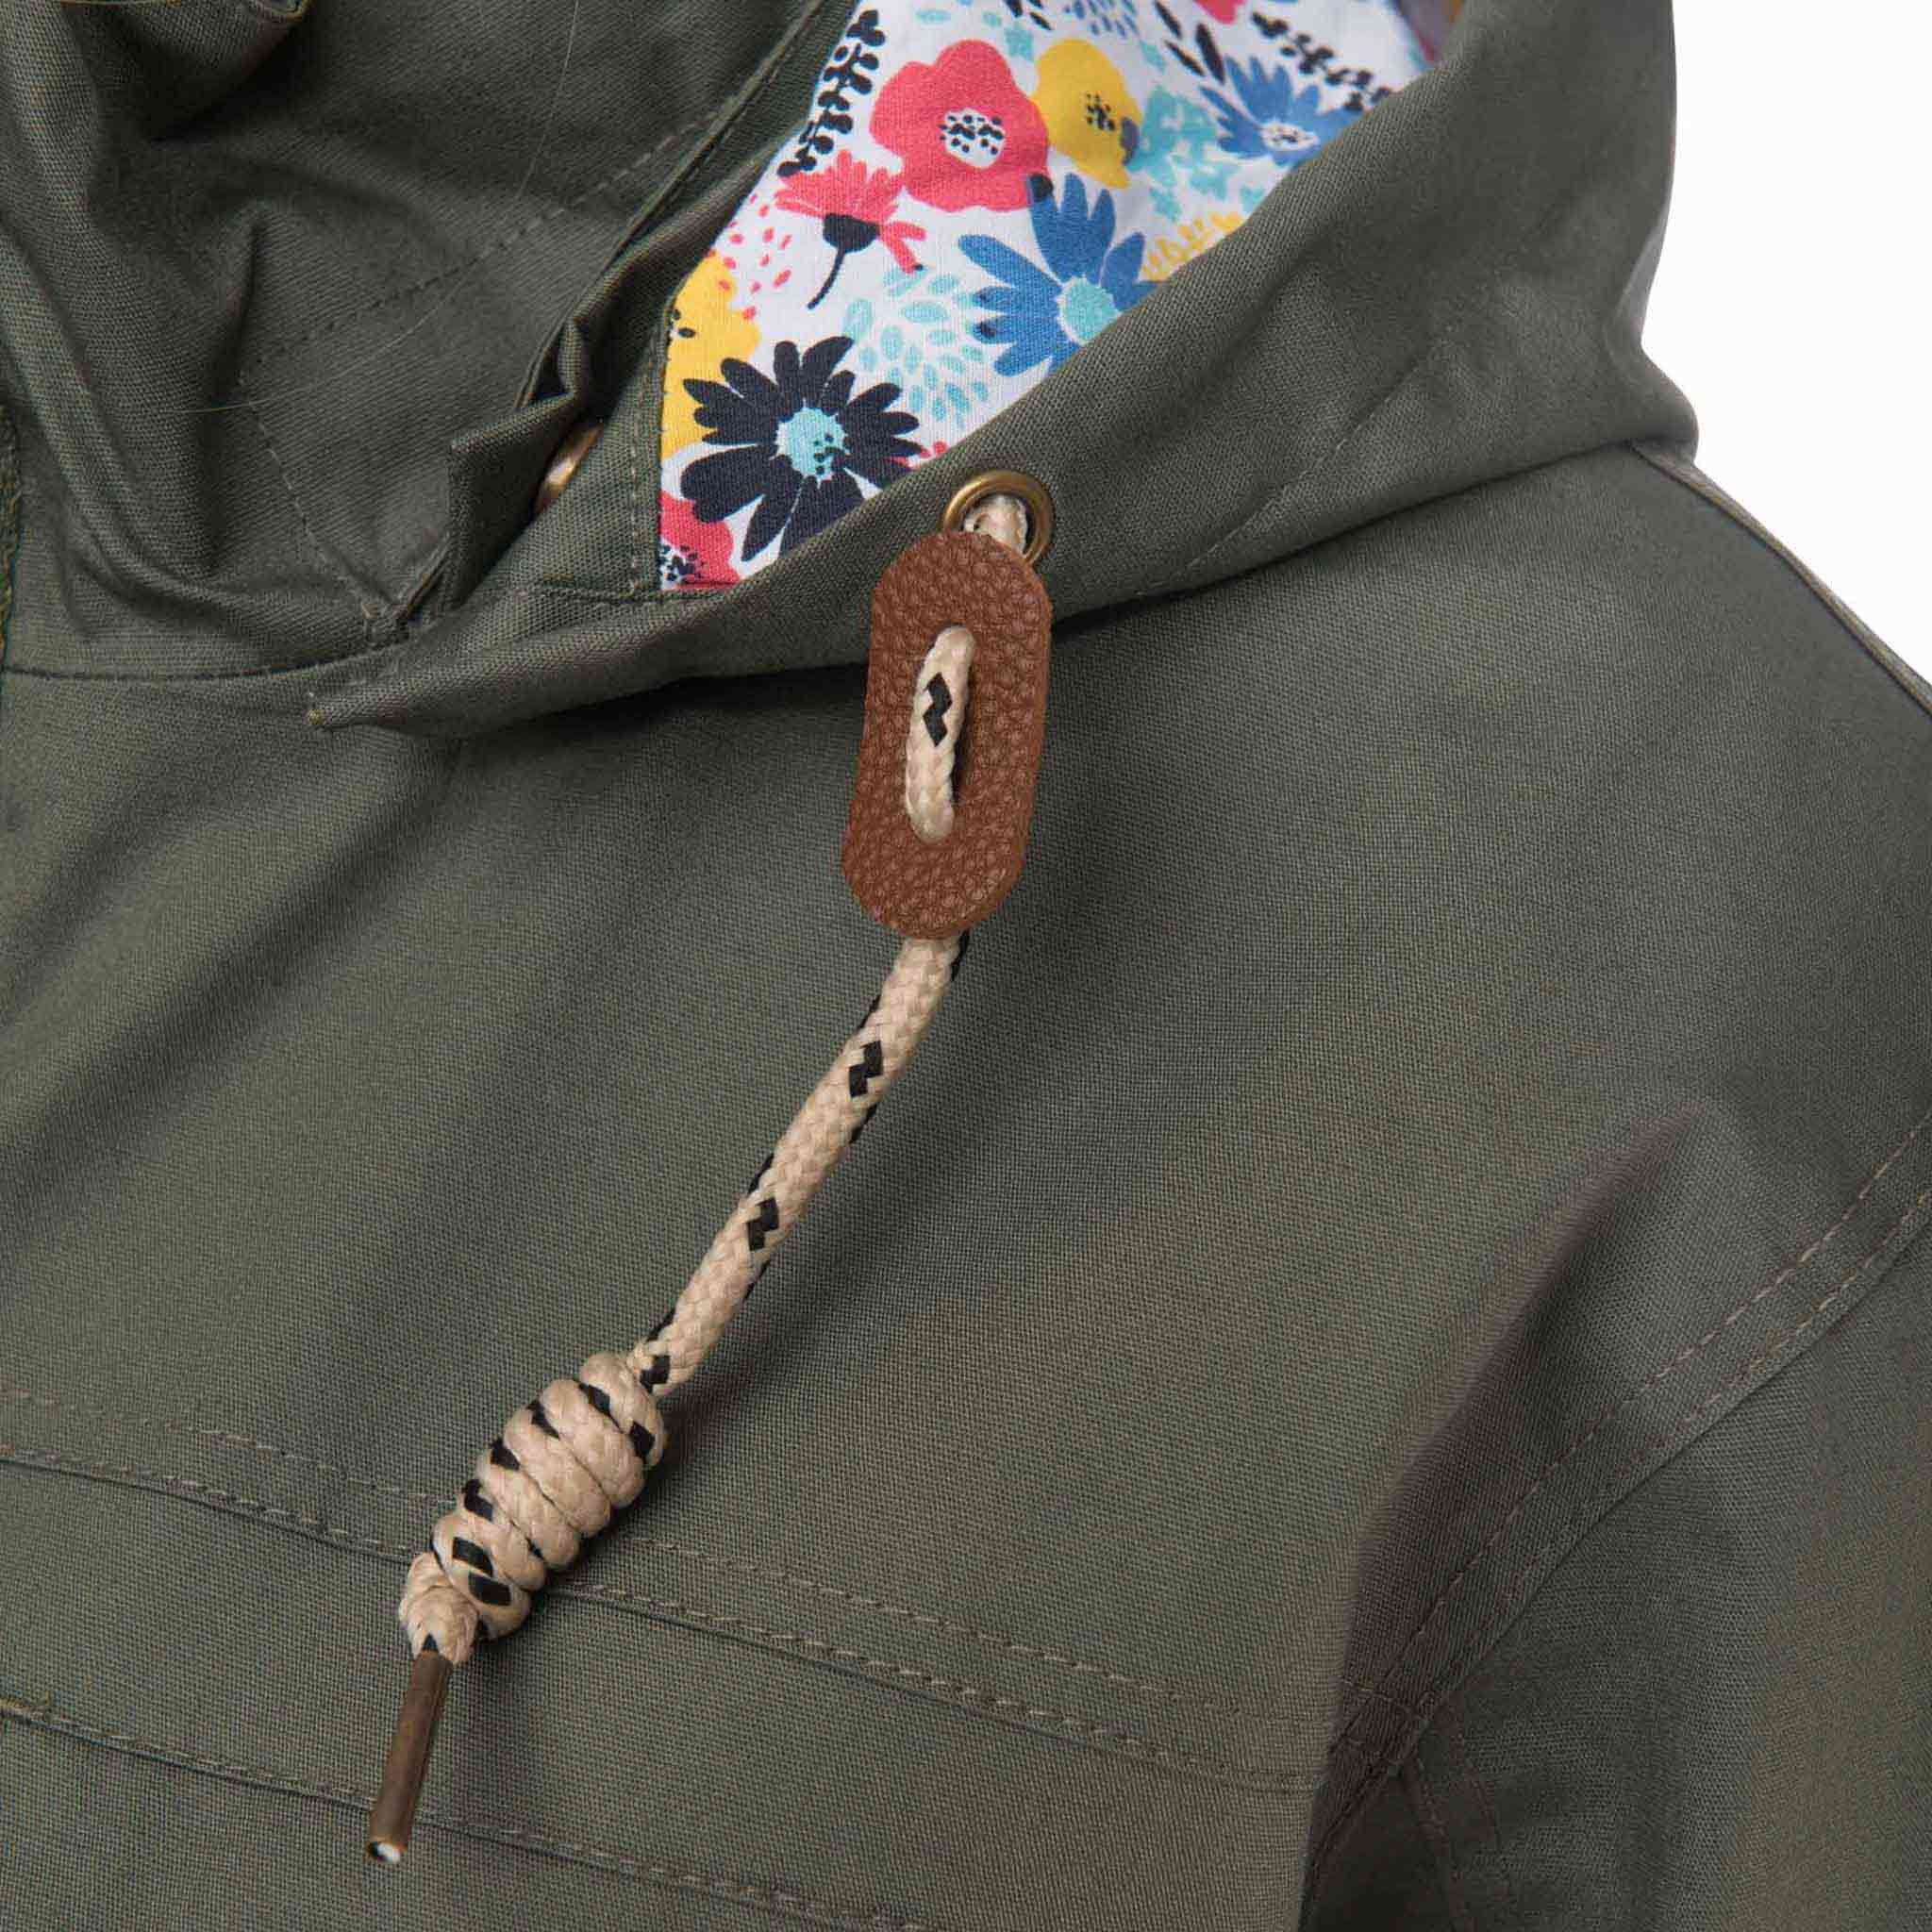 Romy Womens Waterproof Jacket with Cotton Outer in Willow Green, Modelled Detail View | Lighthouse